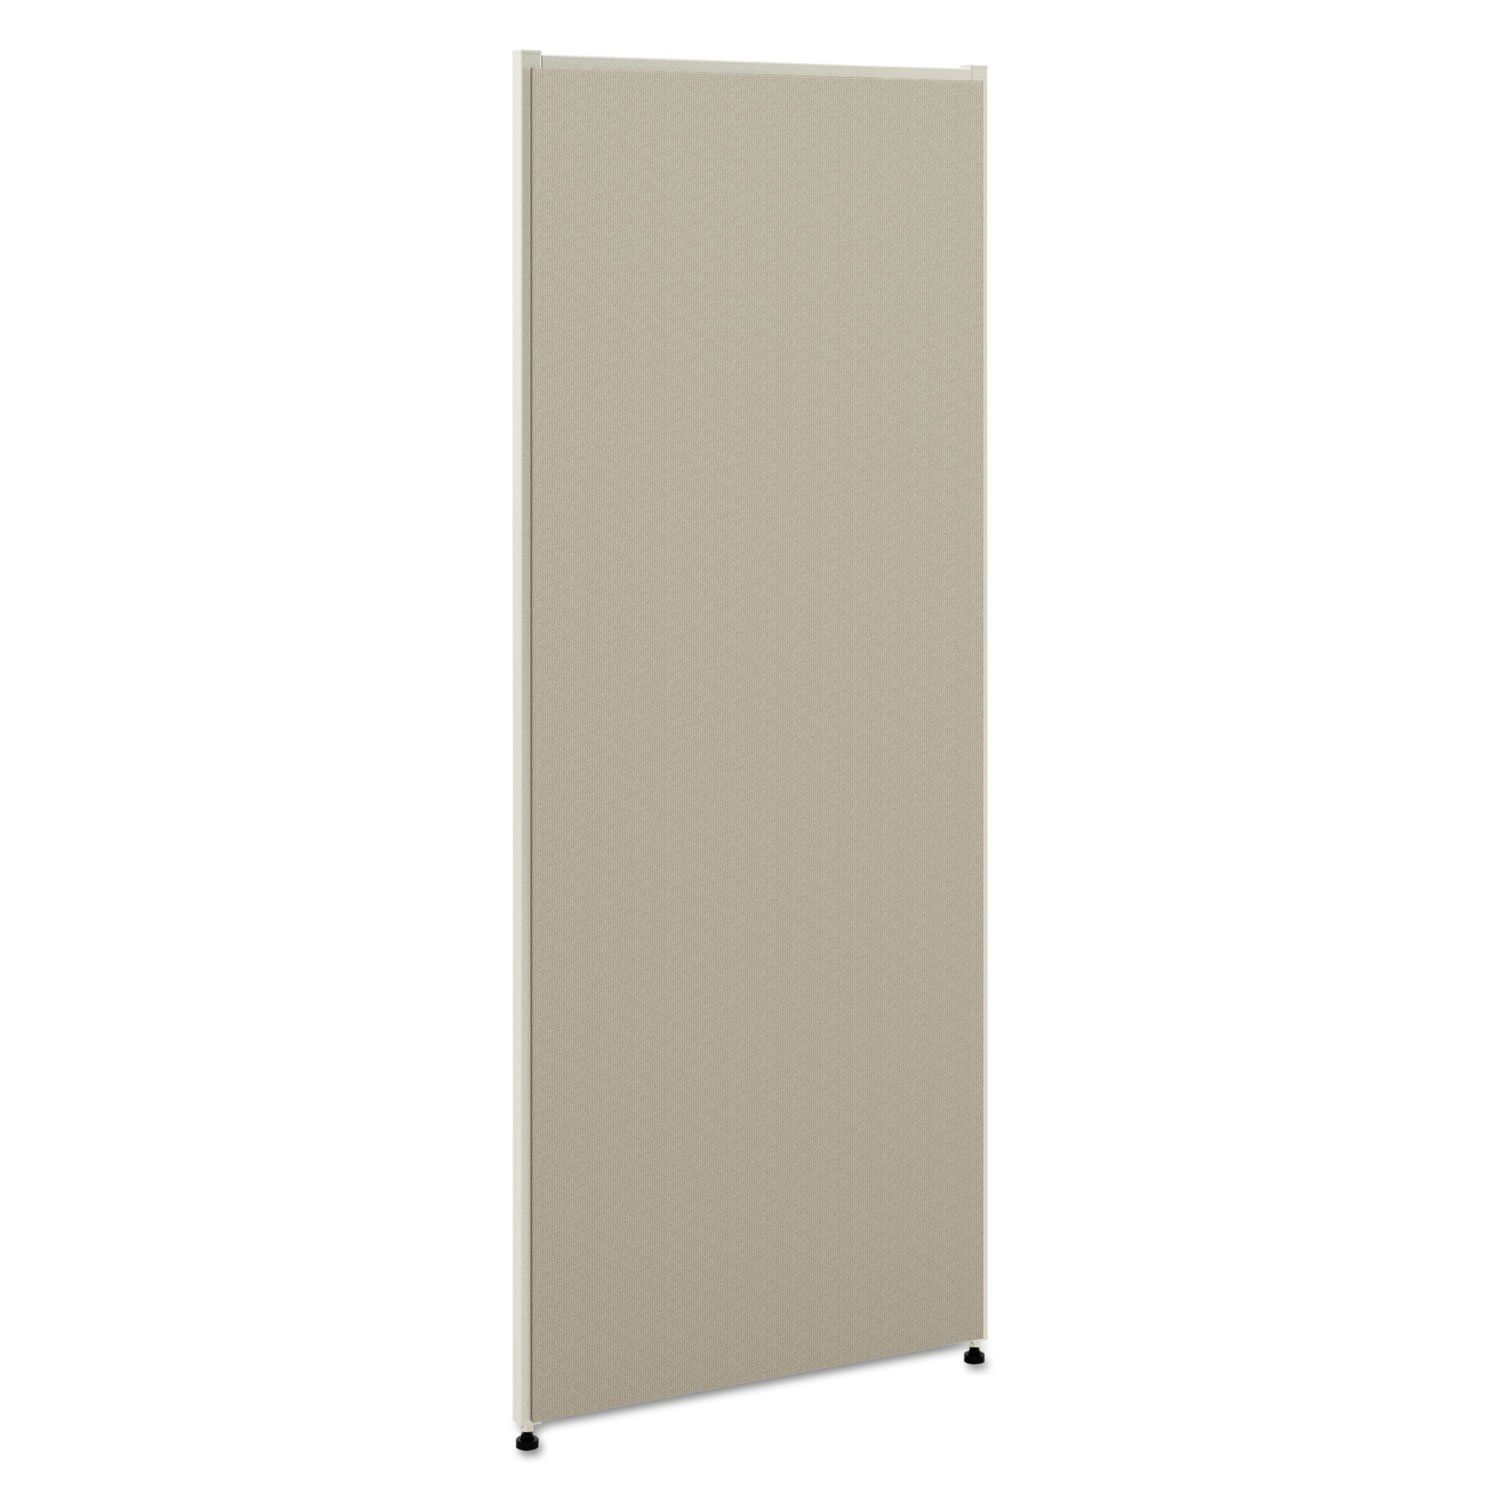 Basyx P6072GYGY Verse Office Panel, 72w x 60h, Gray